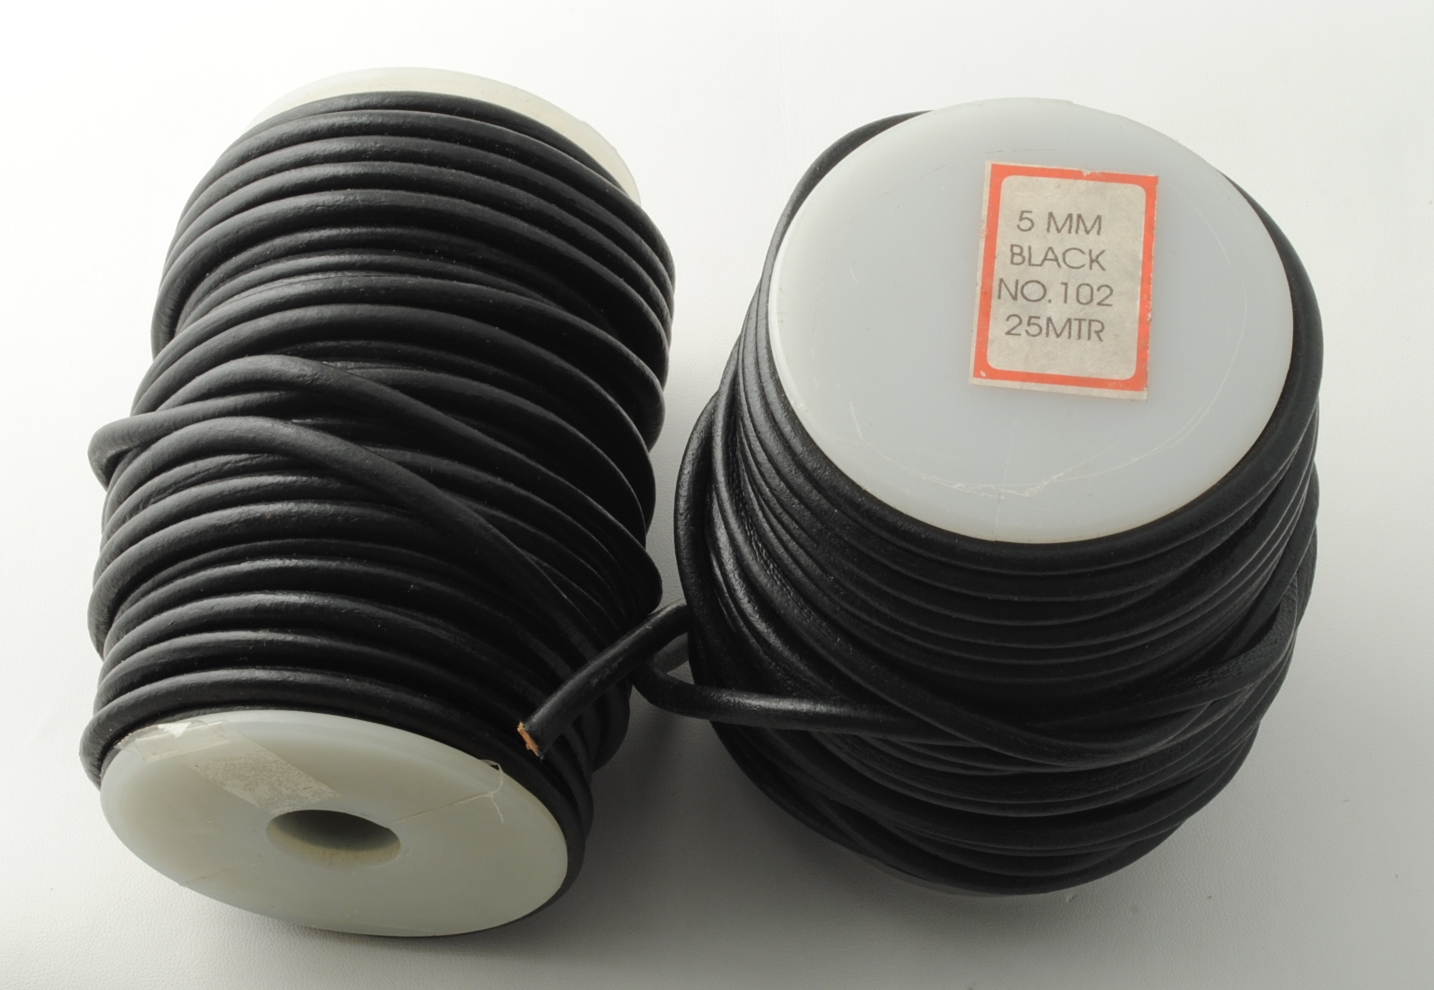 LEATHER CORD 5.0MM X 25MT BLACK COLOR